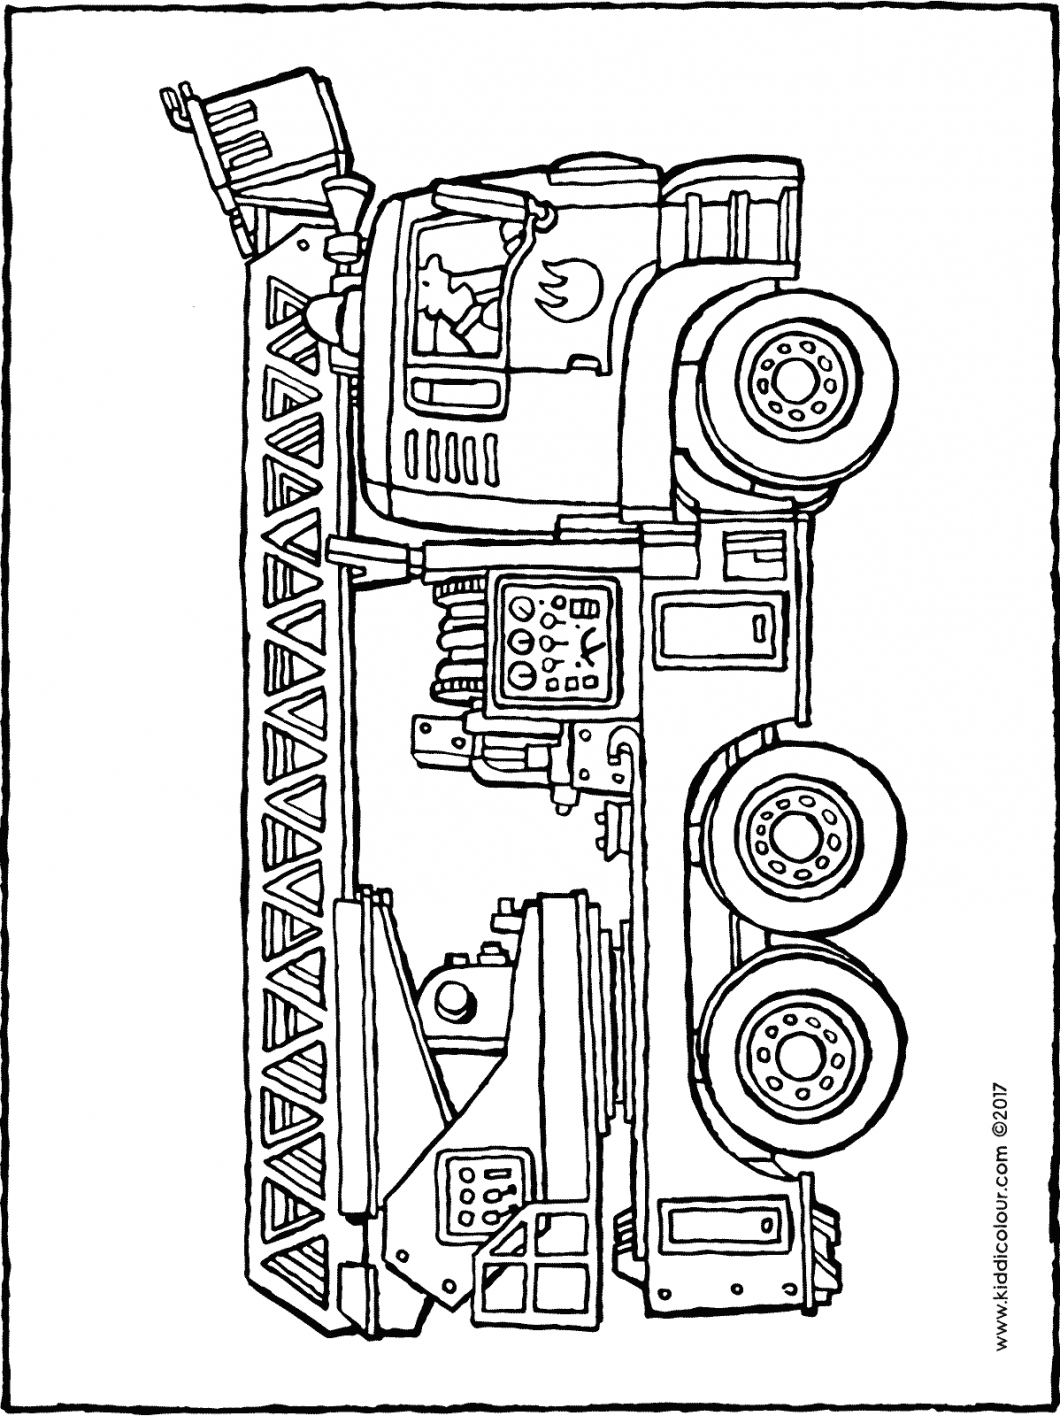 fire engine colouring page drawing picture 01H